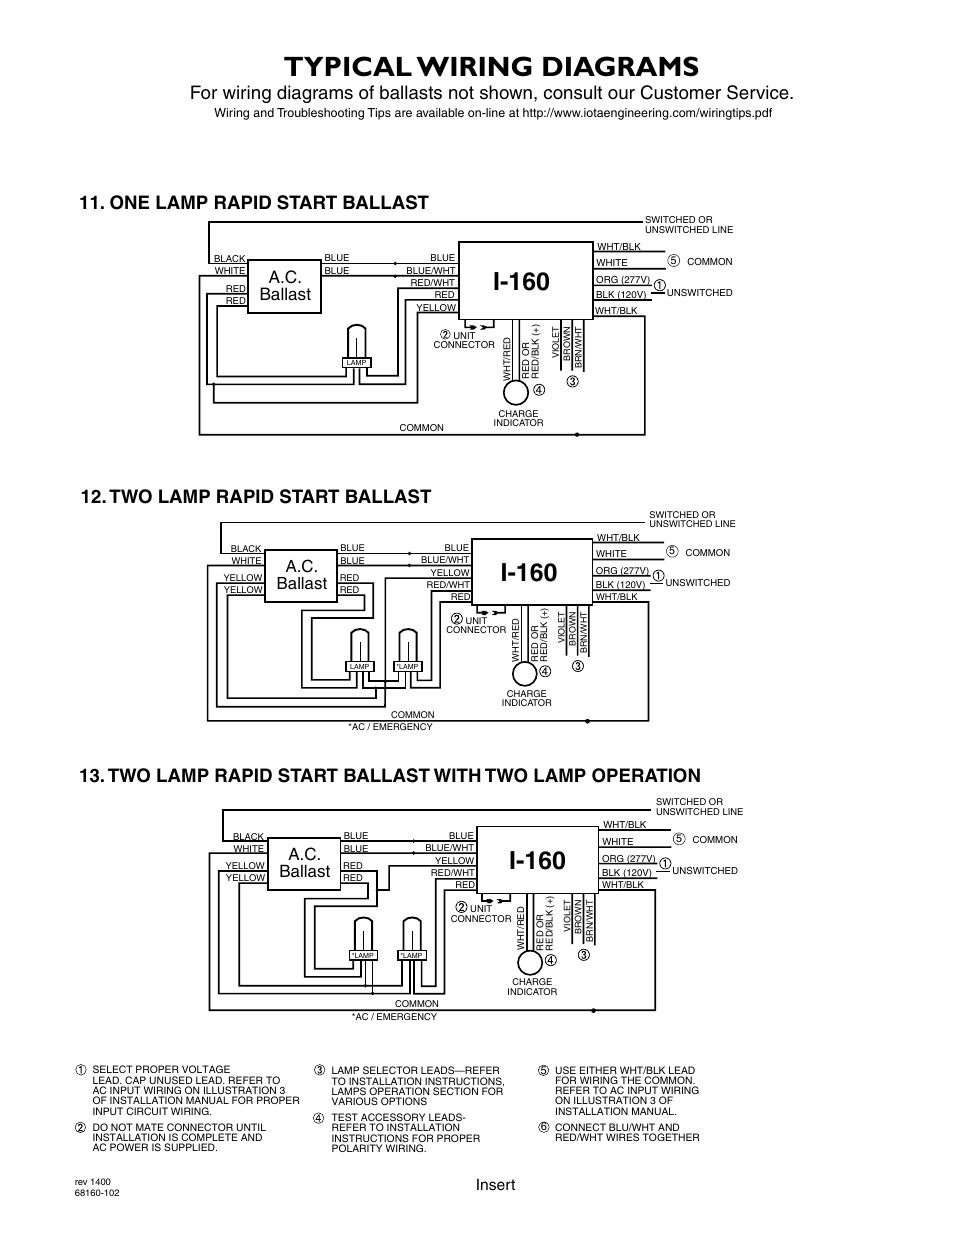 medium resolution of typical wiring diagrams i 160 a c ballast iota i 160 user manual page 5 5